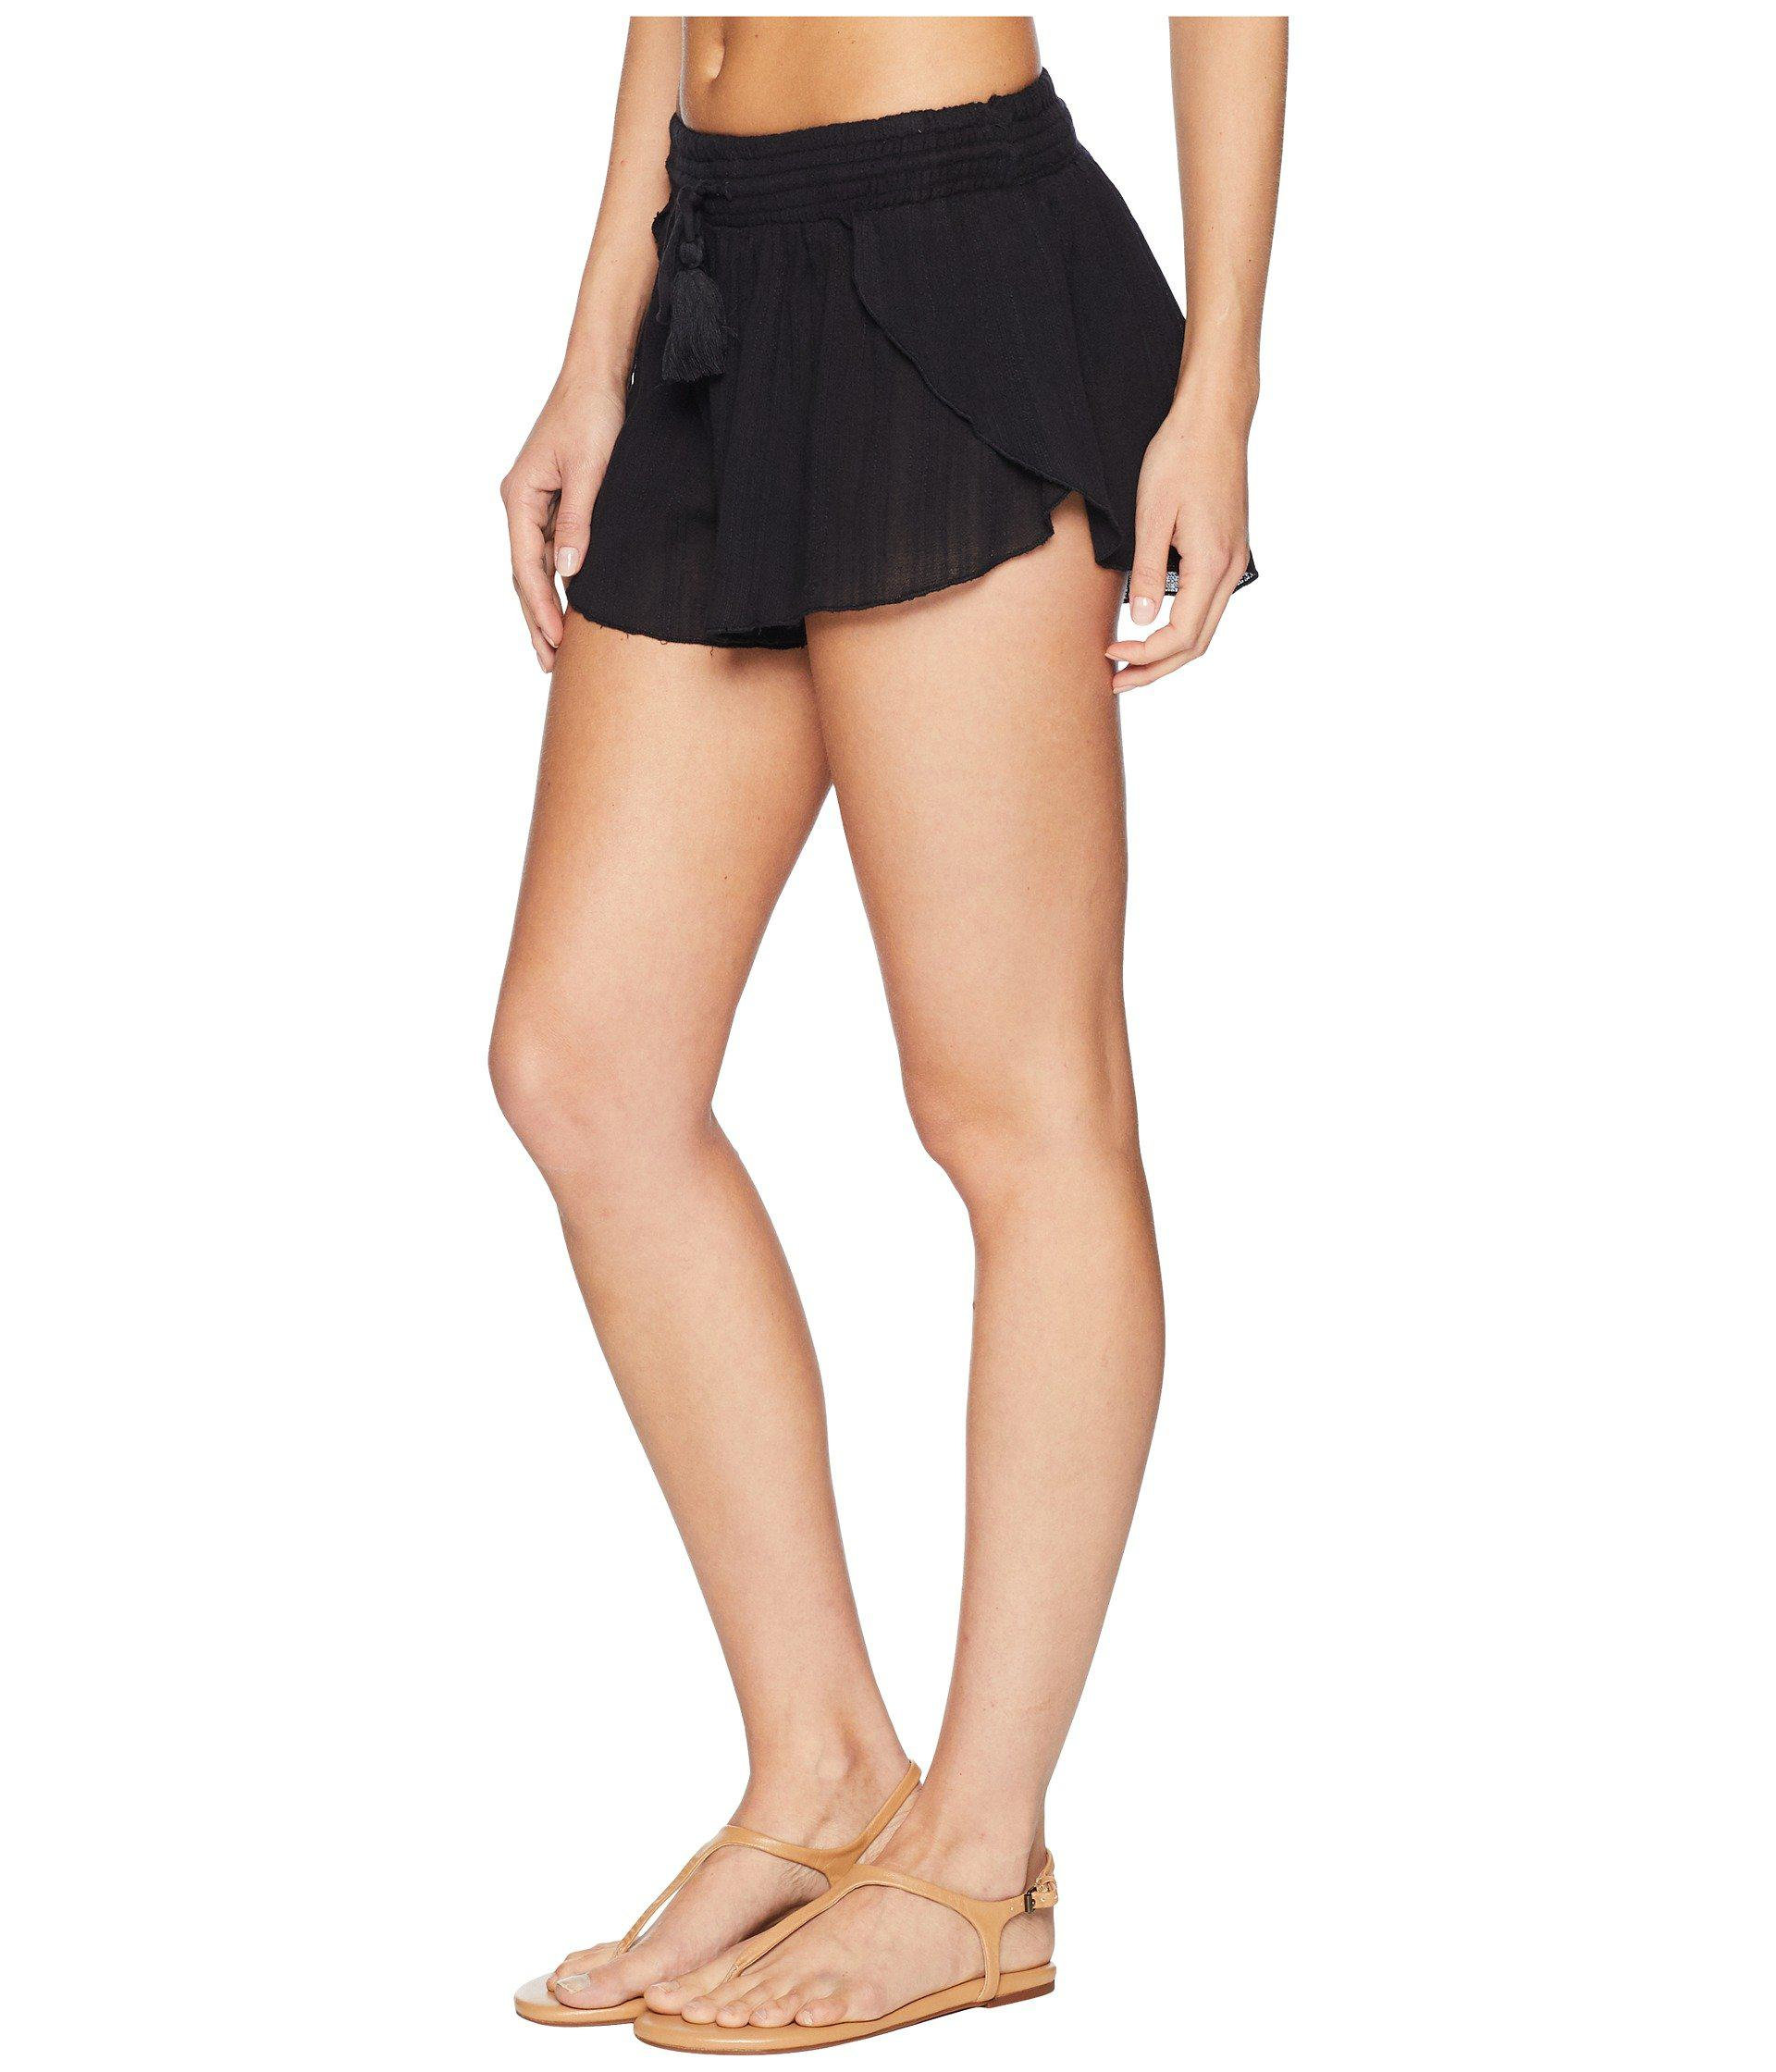 f3f478eaf2 Lyst - Rip Curl Classic Surf Shorts in Black - Save 41%